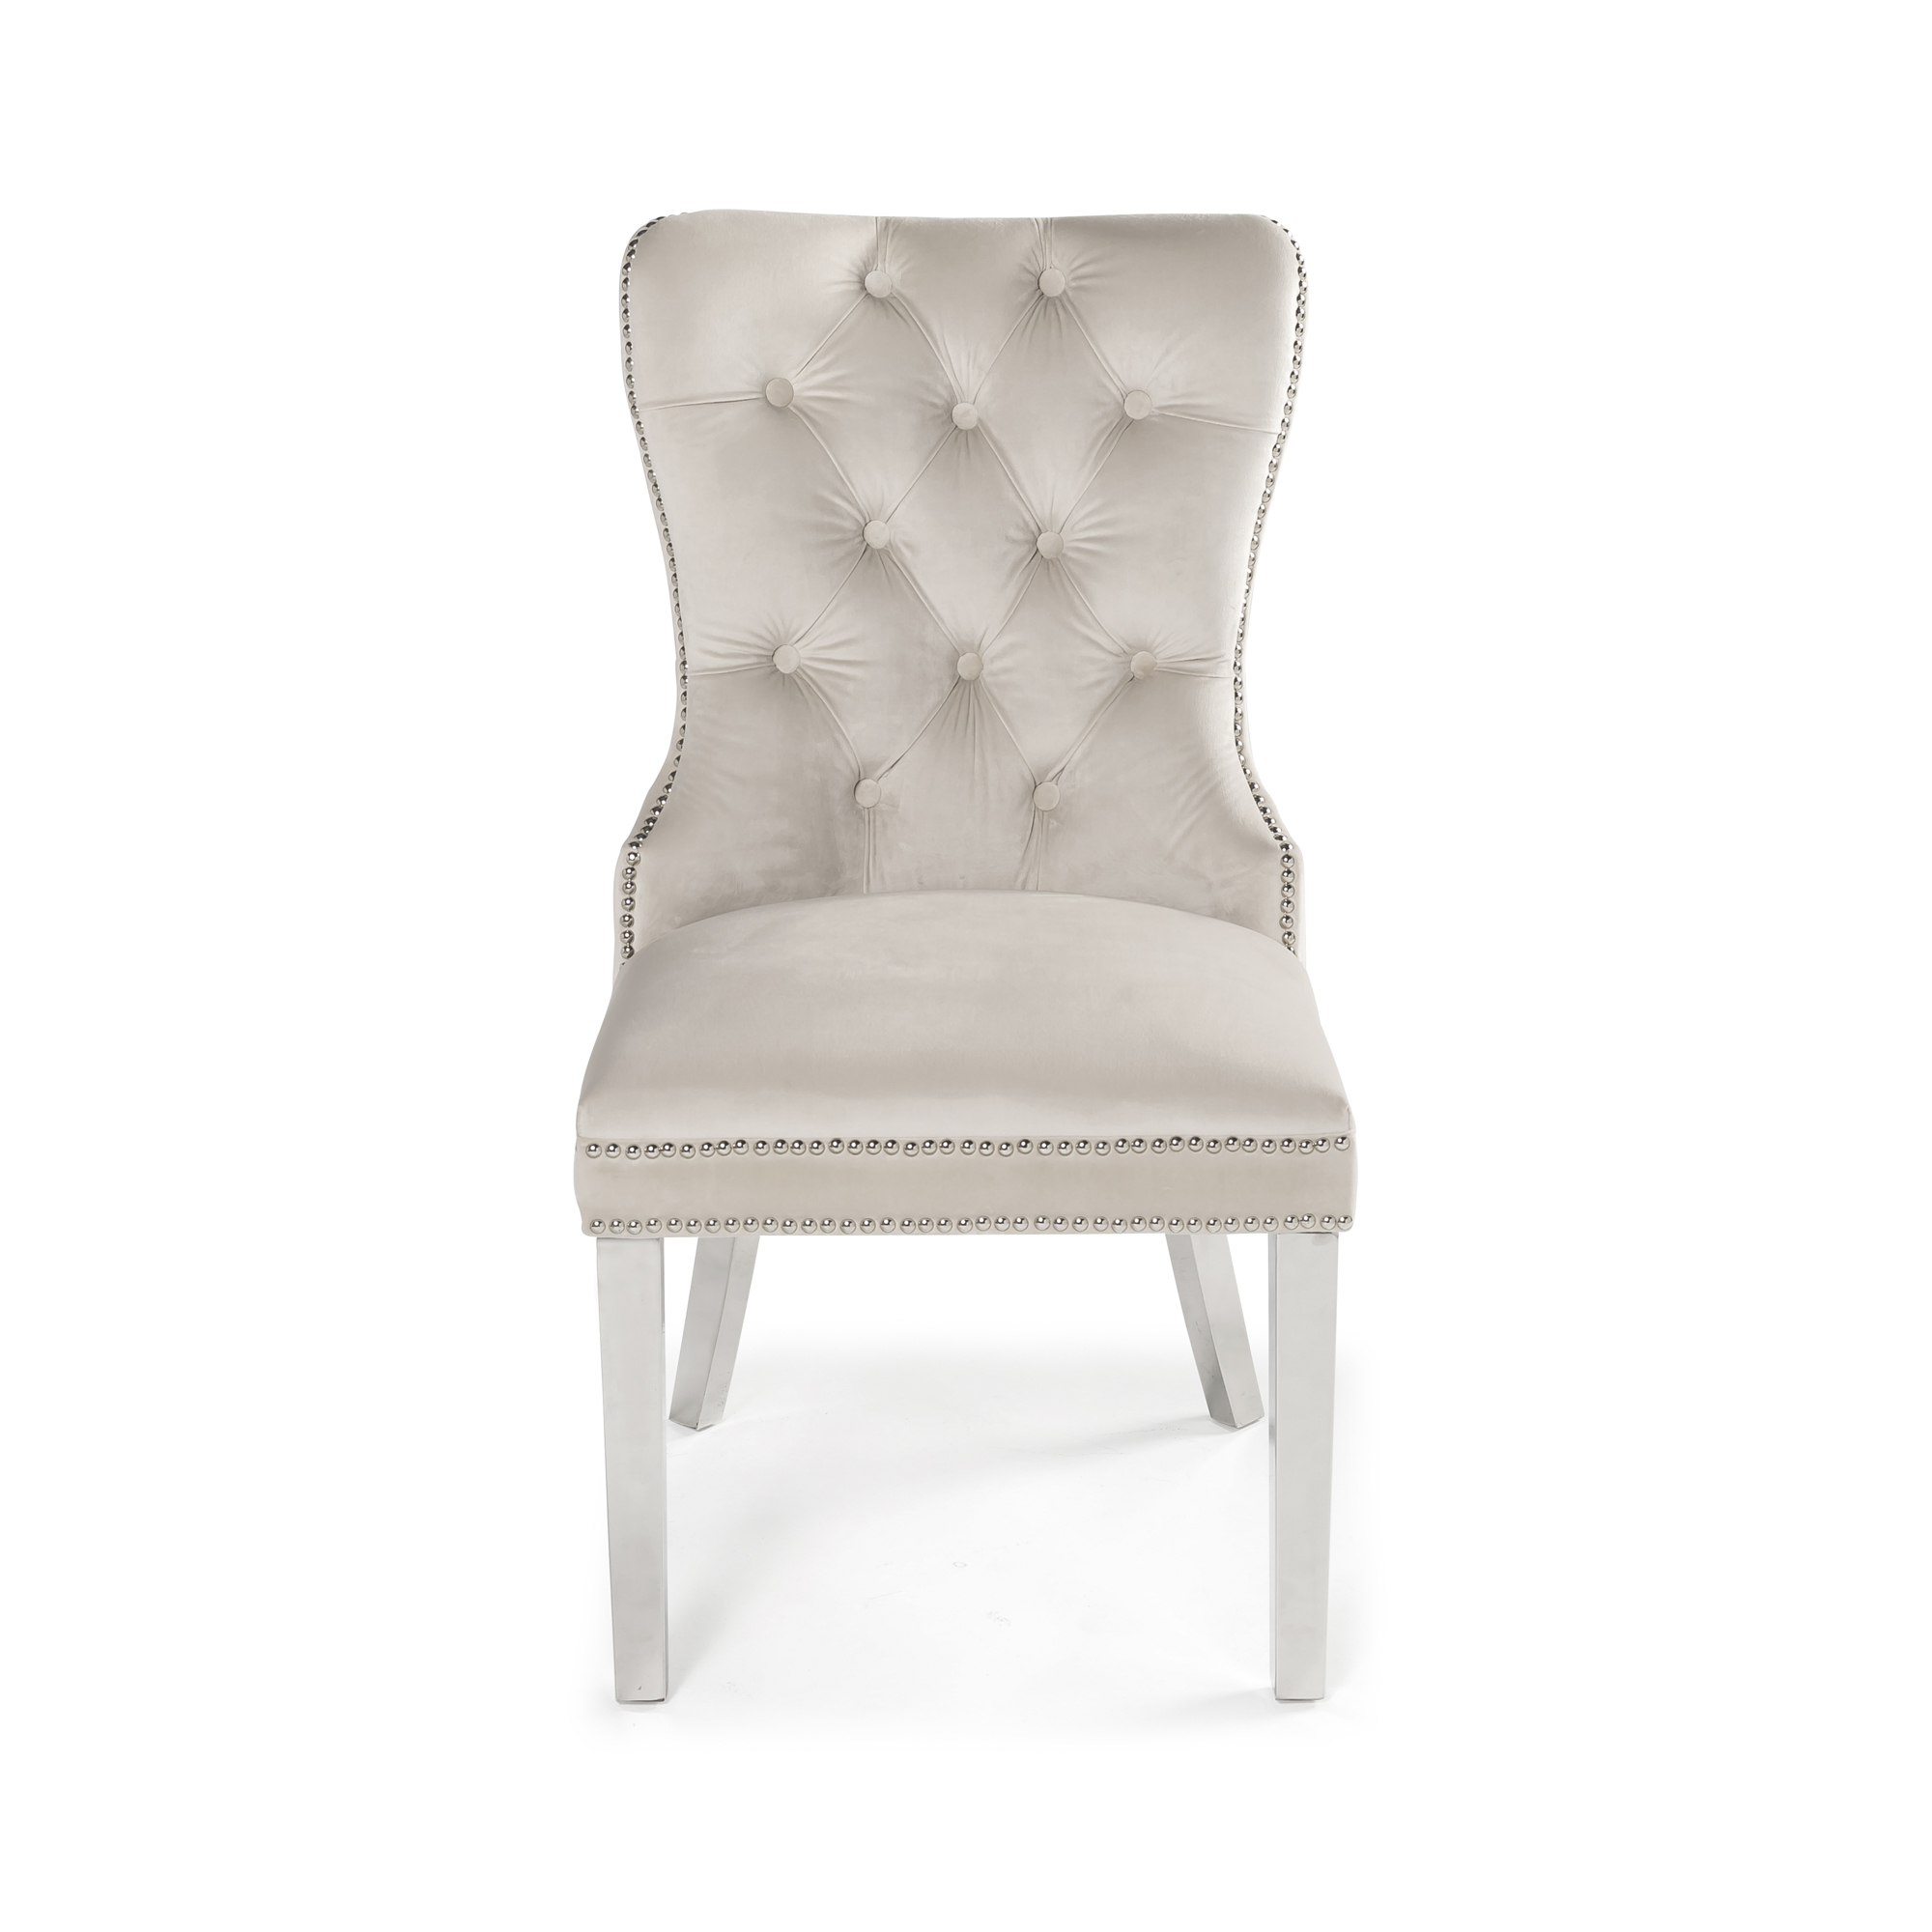 Hale Cream Brushed Velvet Studded & Hoop Dining Chair with Polished Steel Legs